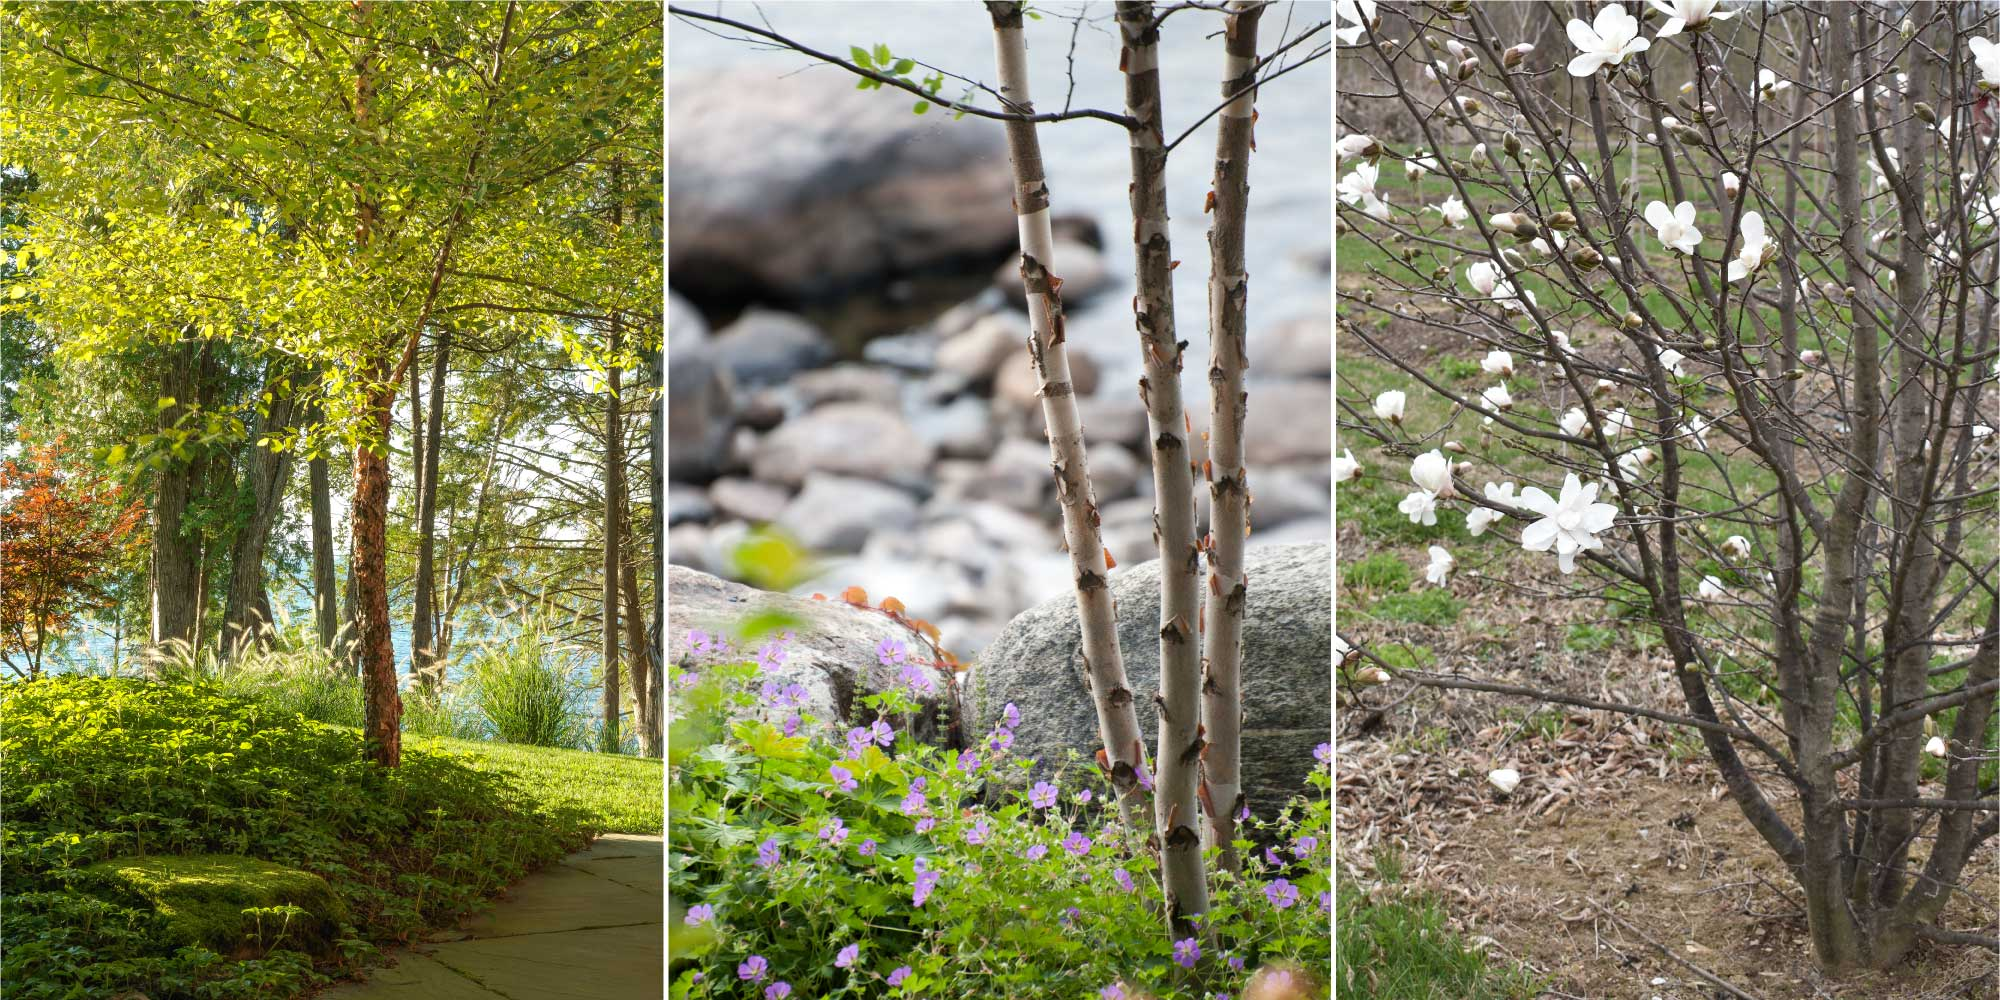 Examples of single stem clump and multistem trees